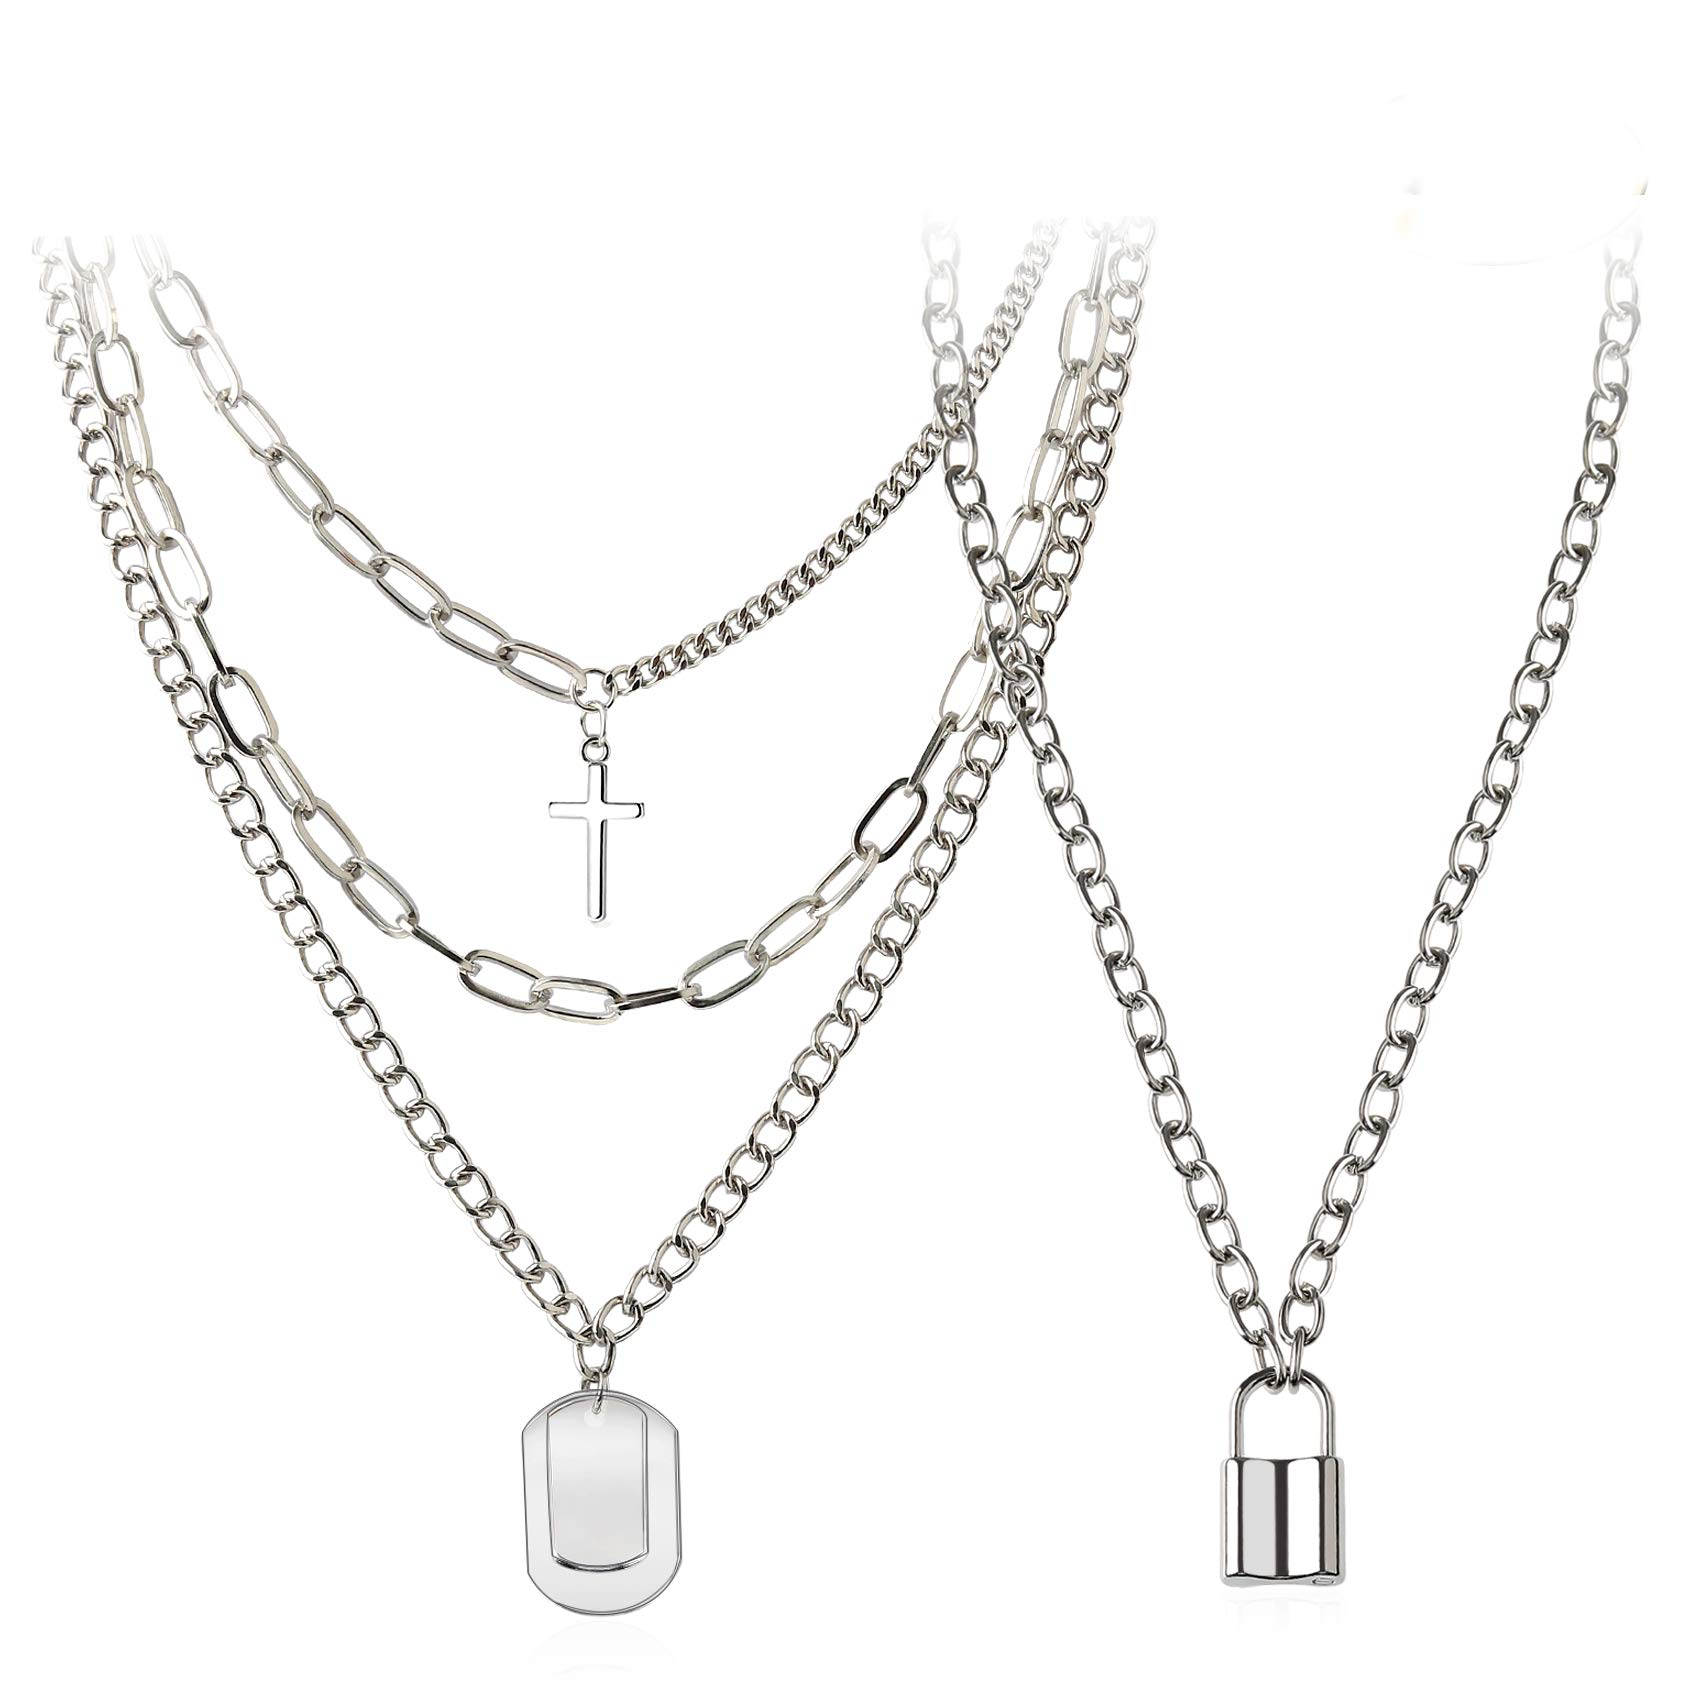 Womens Men Lock Chain Silver Necklace Punk Layered Padlock Gothic Pendant Hiphop